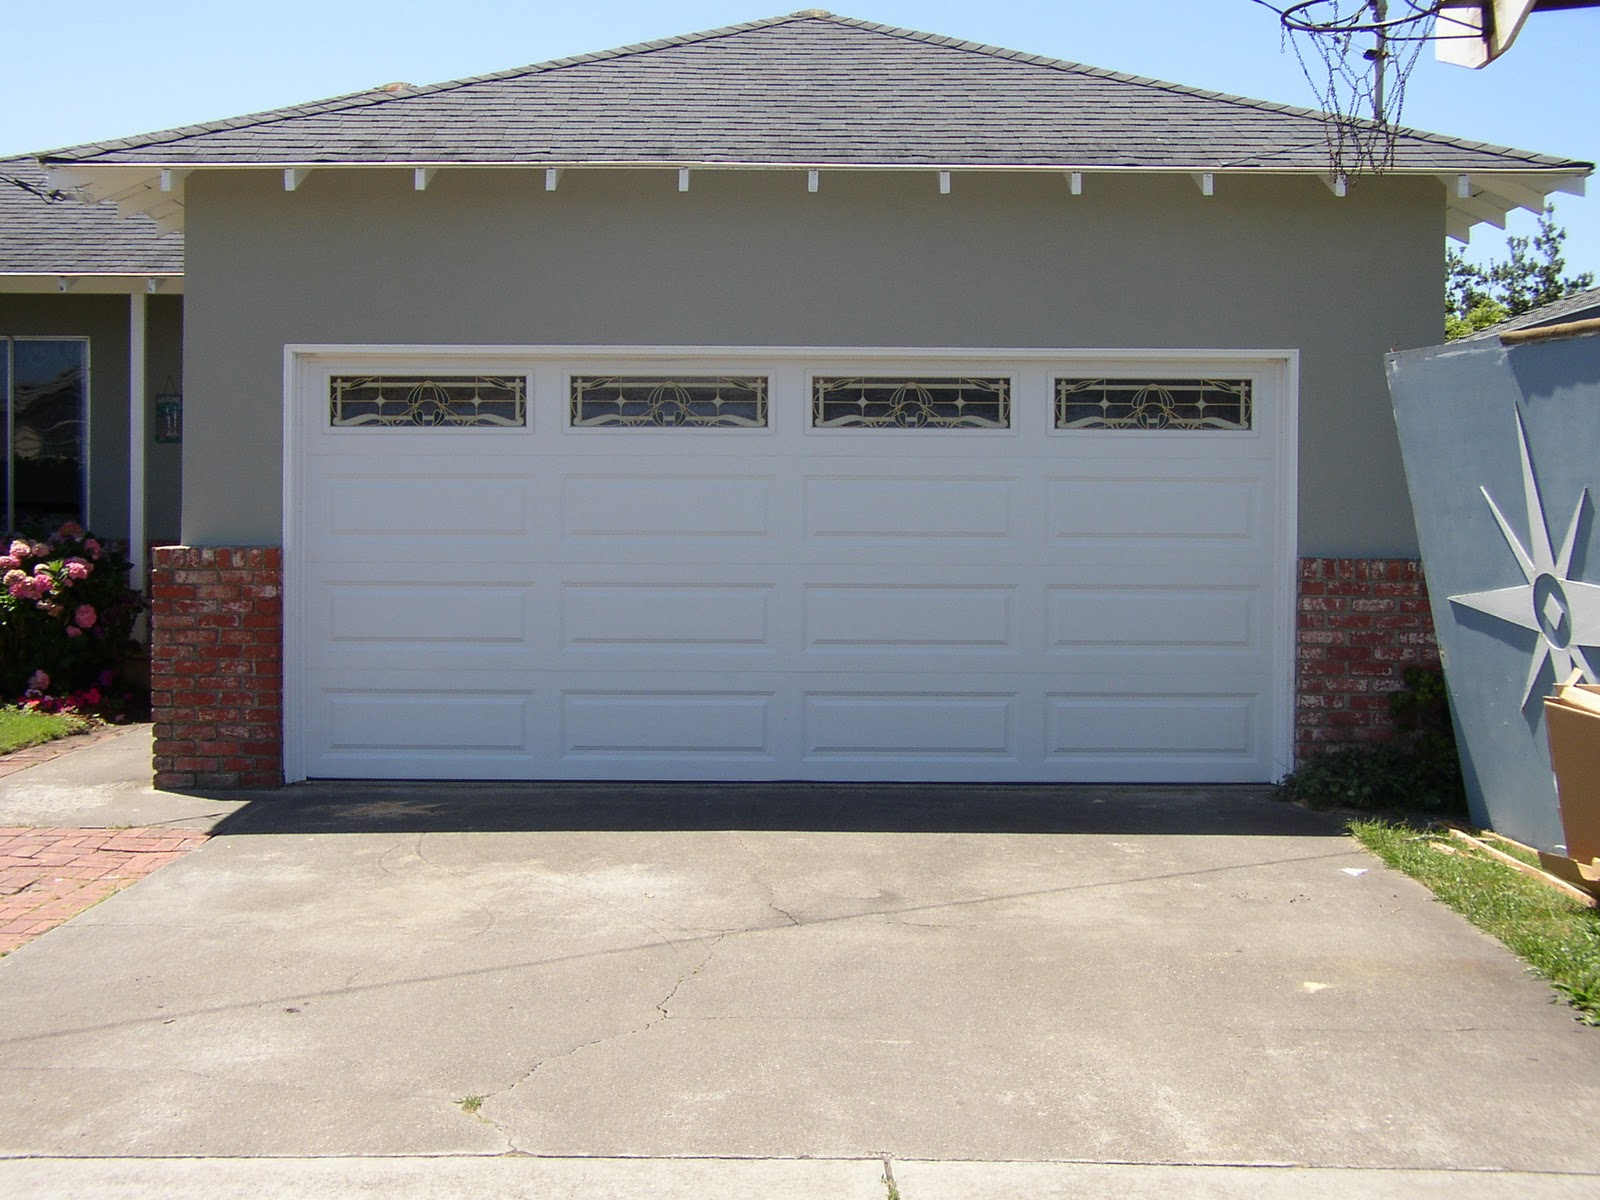 garage door images photo - 1